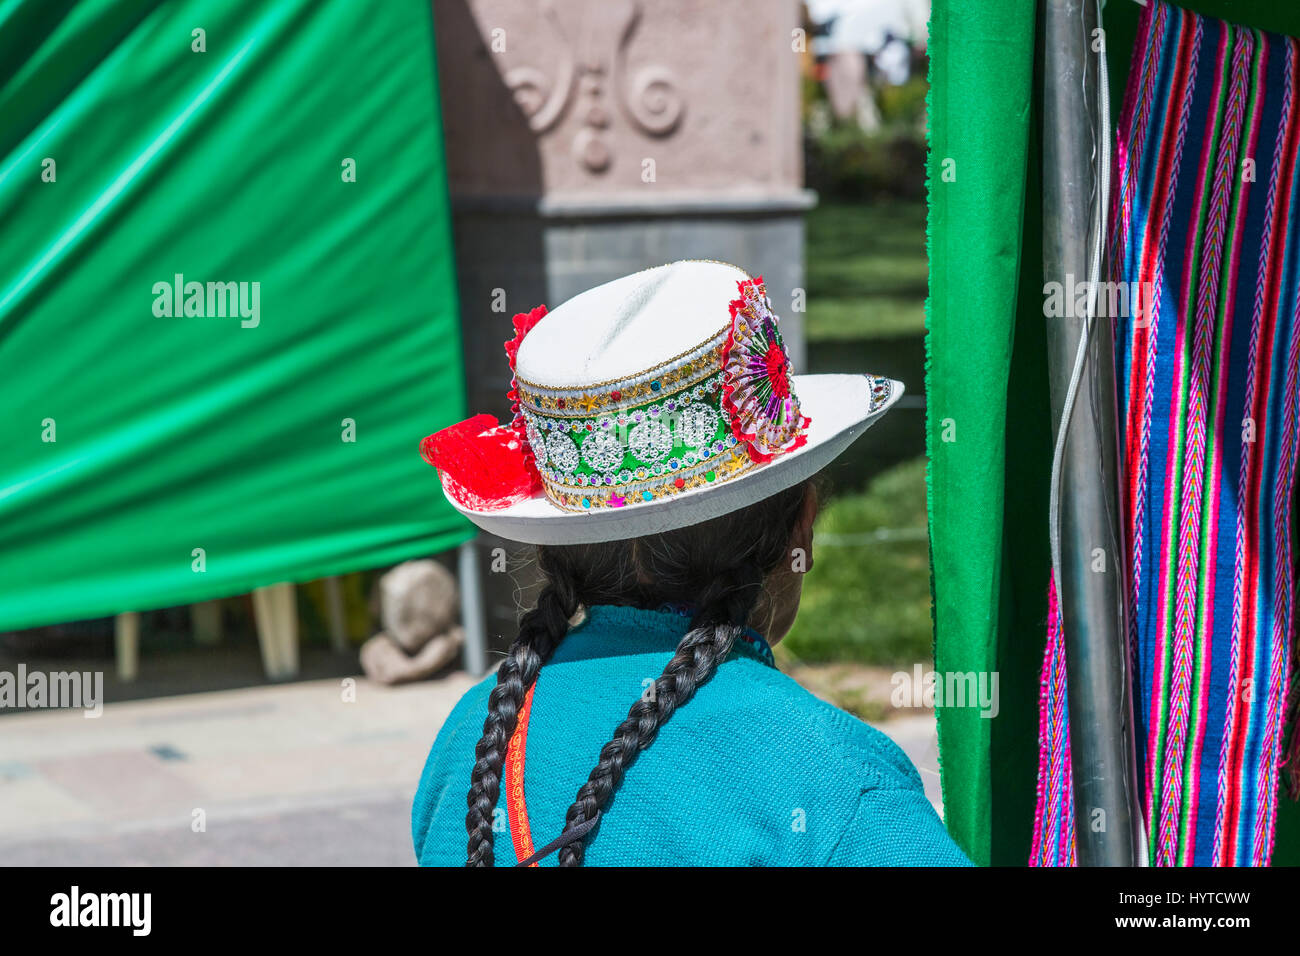 Local woman wearing traditional embroidered hat with rosette, Chivay, a town in the Colca valley, capital of Caylloma - Stock Image